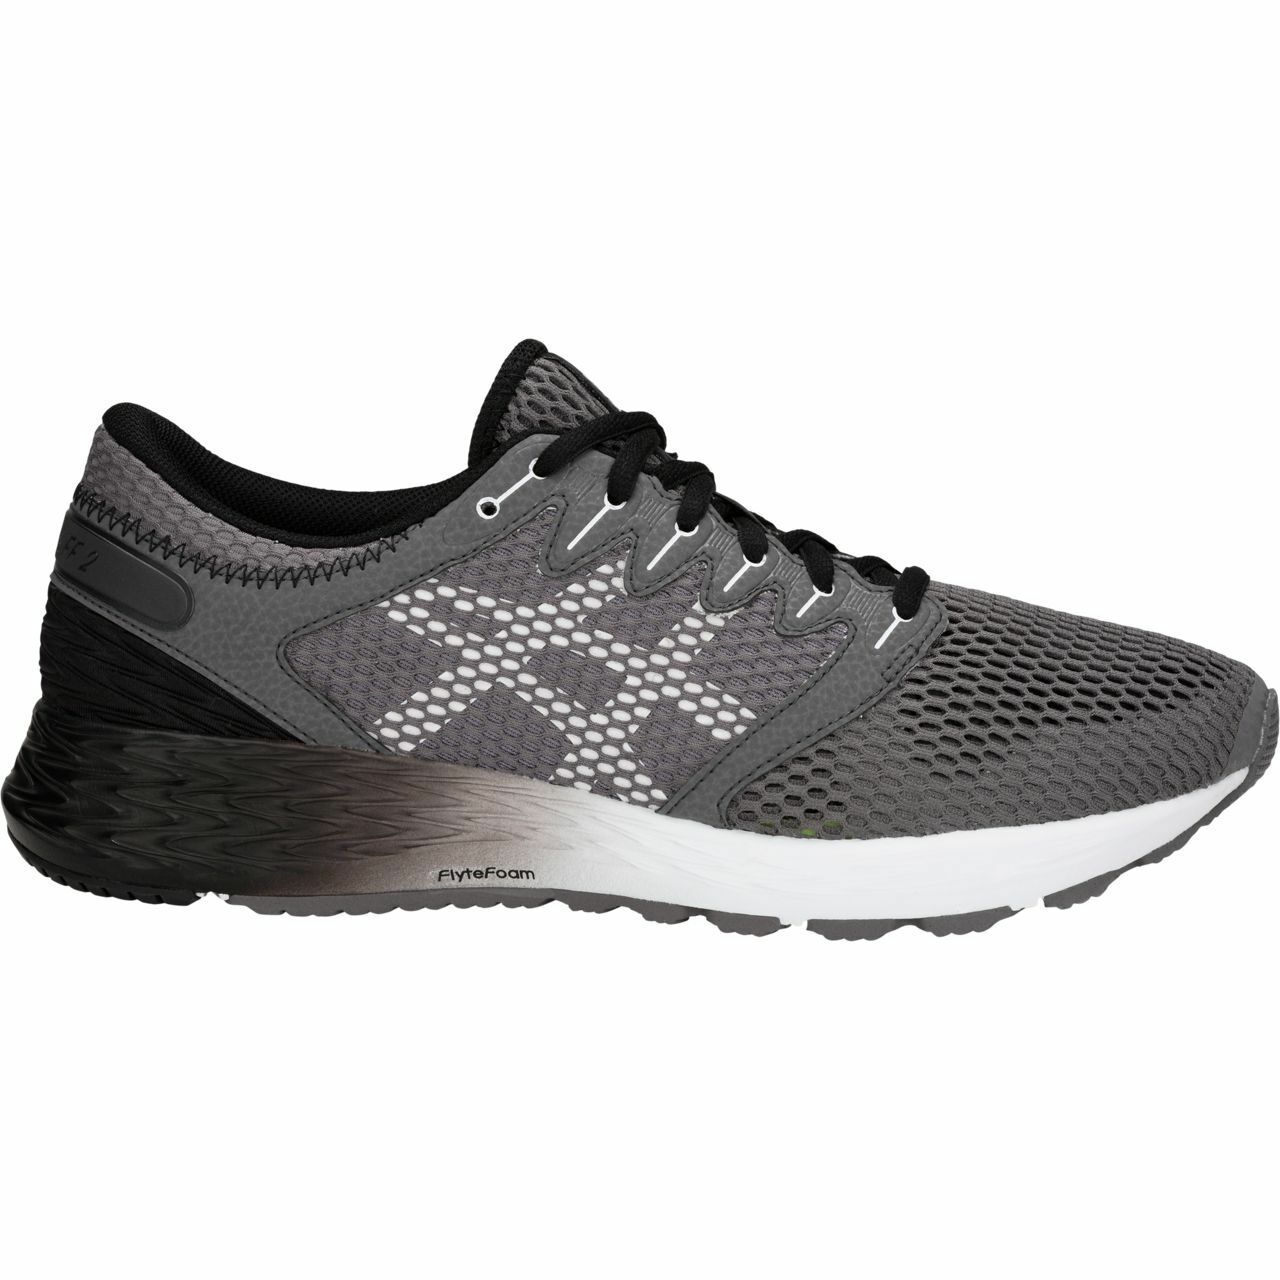 Asics 1011A136 021 Roadhawk FF 2 Carbon White Men's shoes